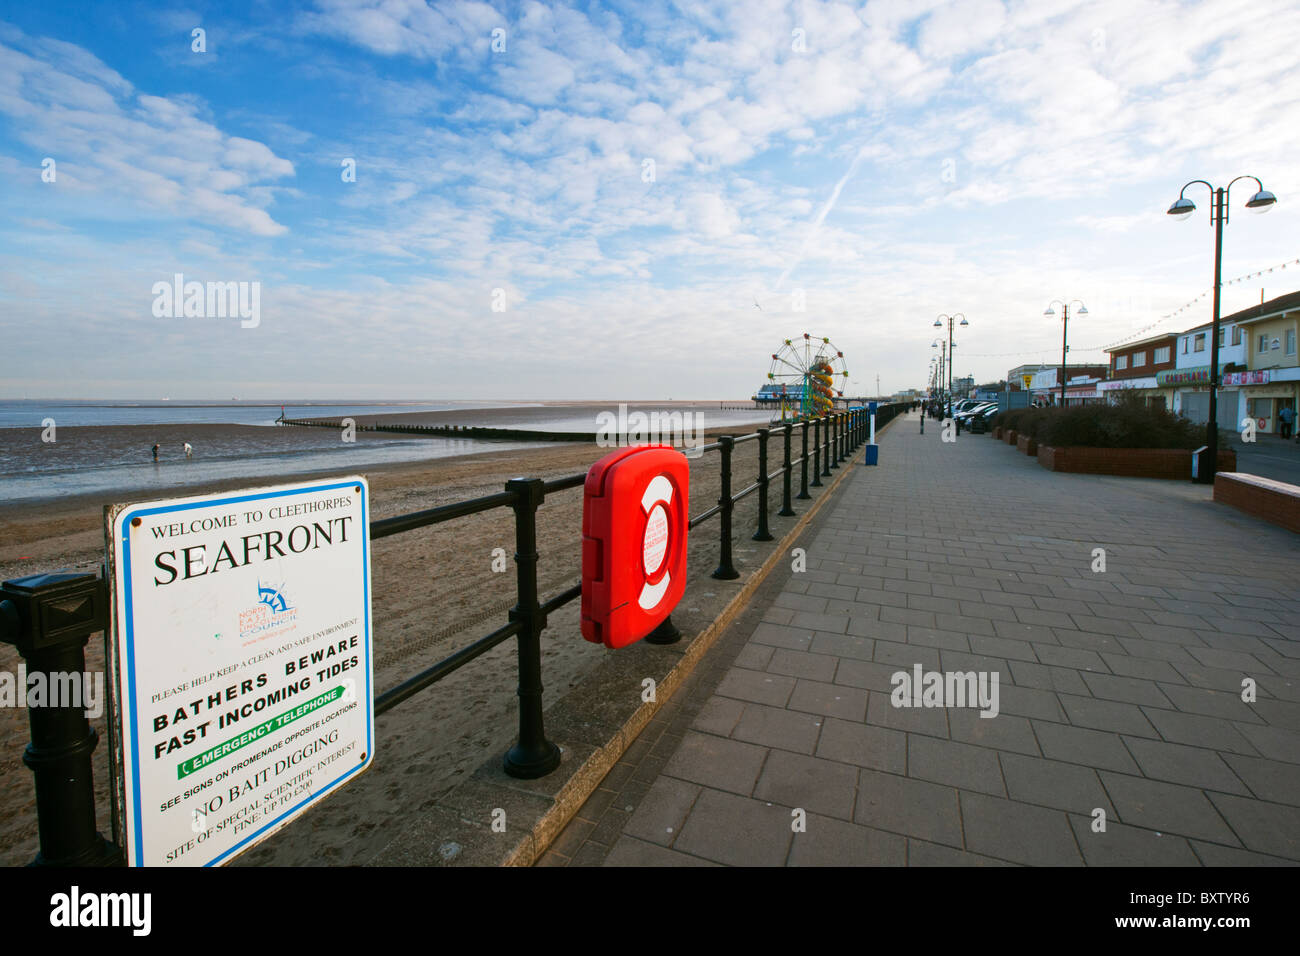 Cleethorpes sea front, pier, amusements, kids rides, ferris wheel slide blue sky day - Stock Image